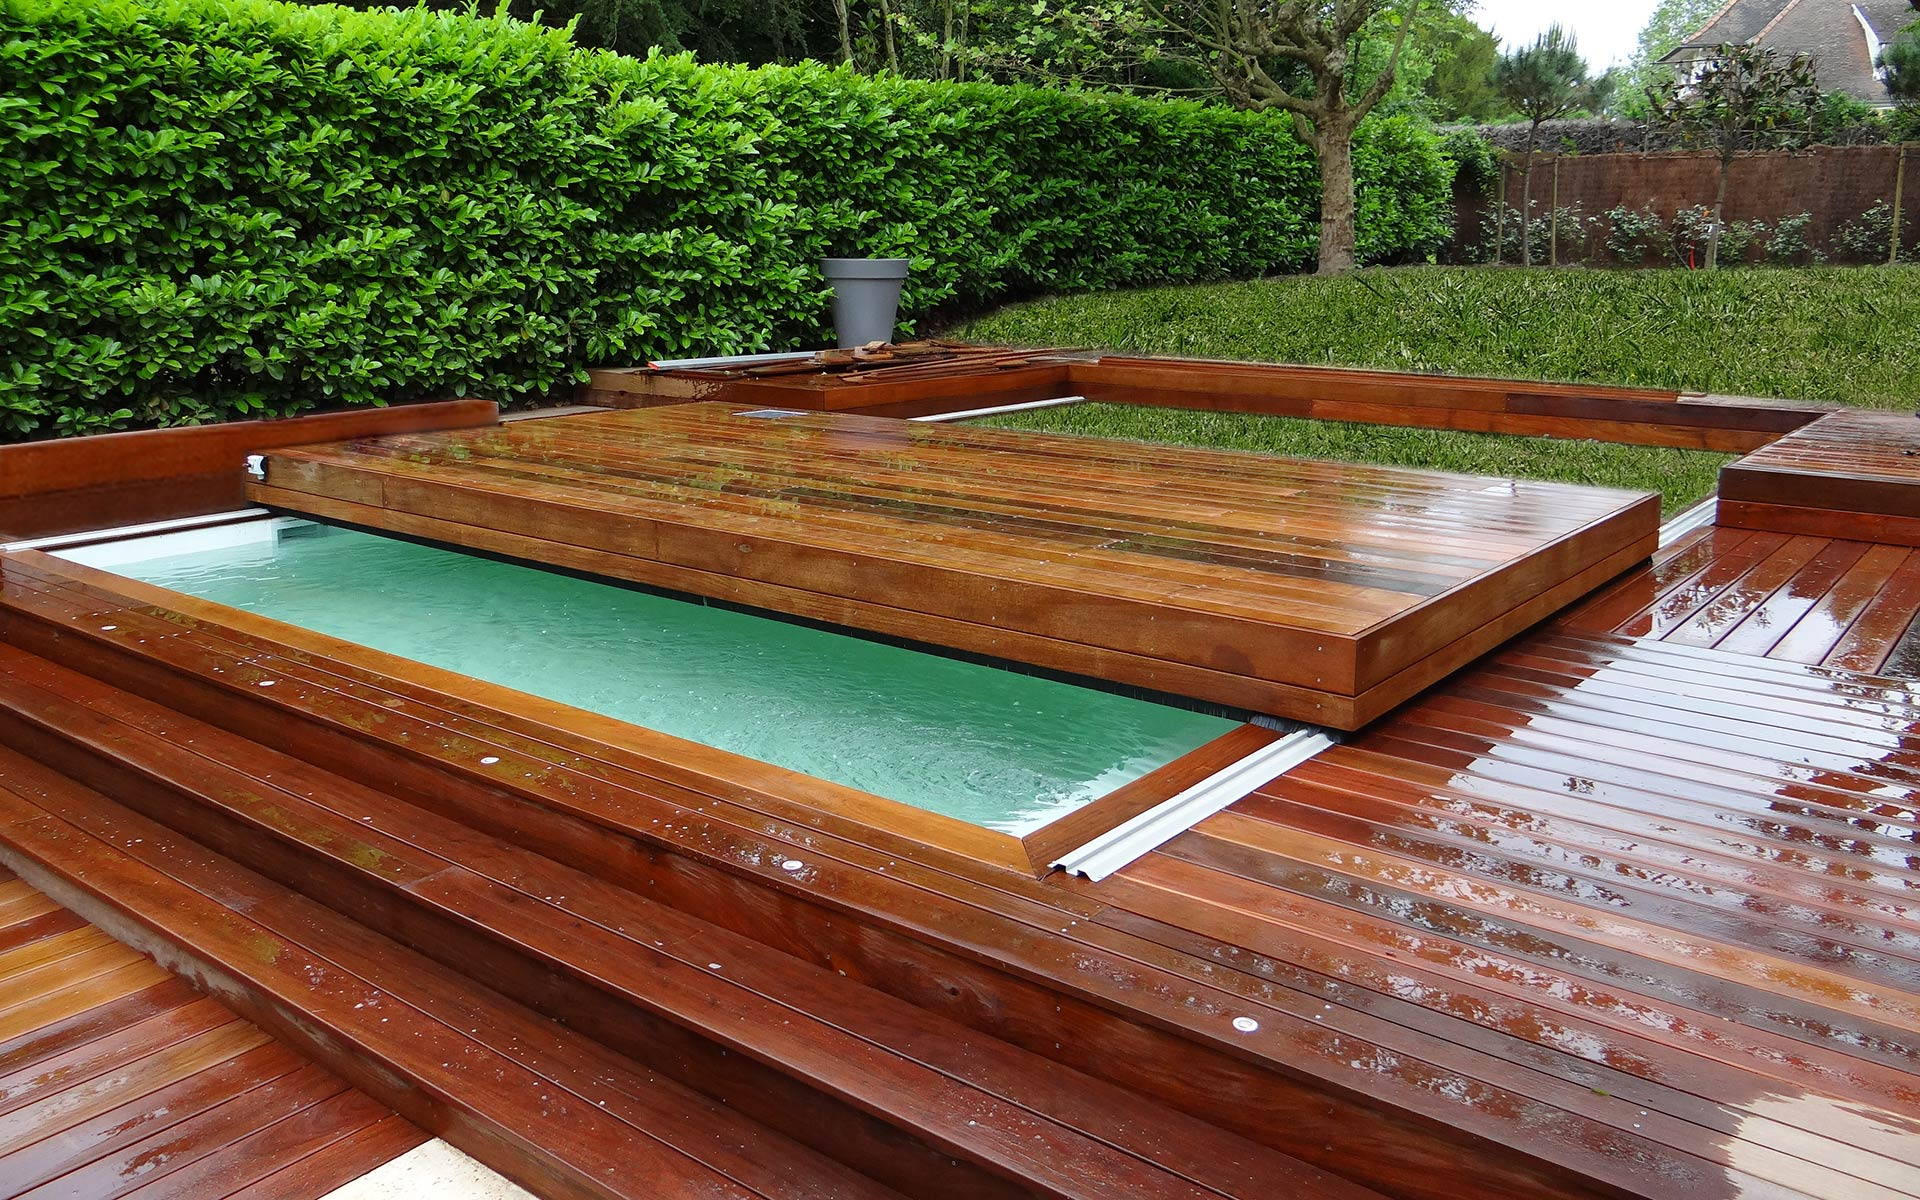 Couverture piscine bois rigide - terrasse mobile